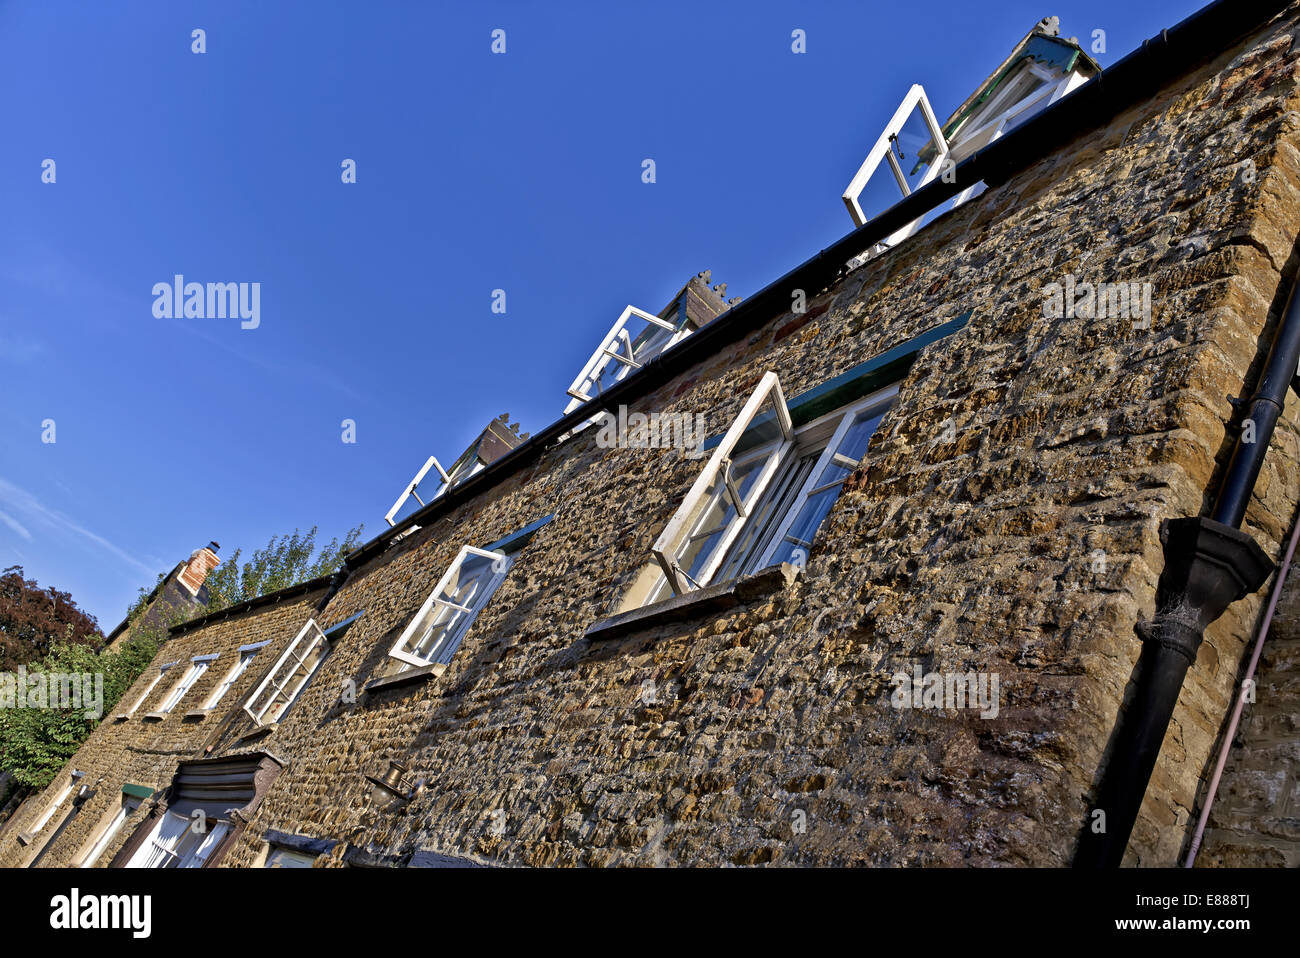 Cotswold stone cottages and wood framed windows against a bright blue sky on an glorious summer day. England UK - Stock Image